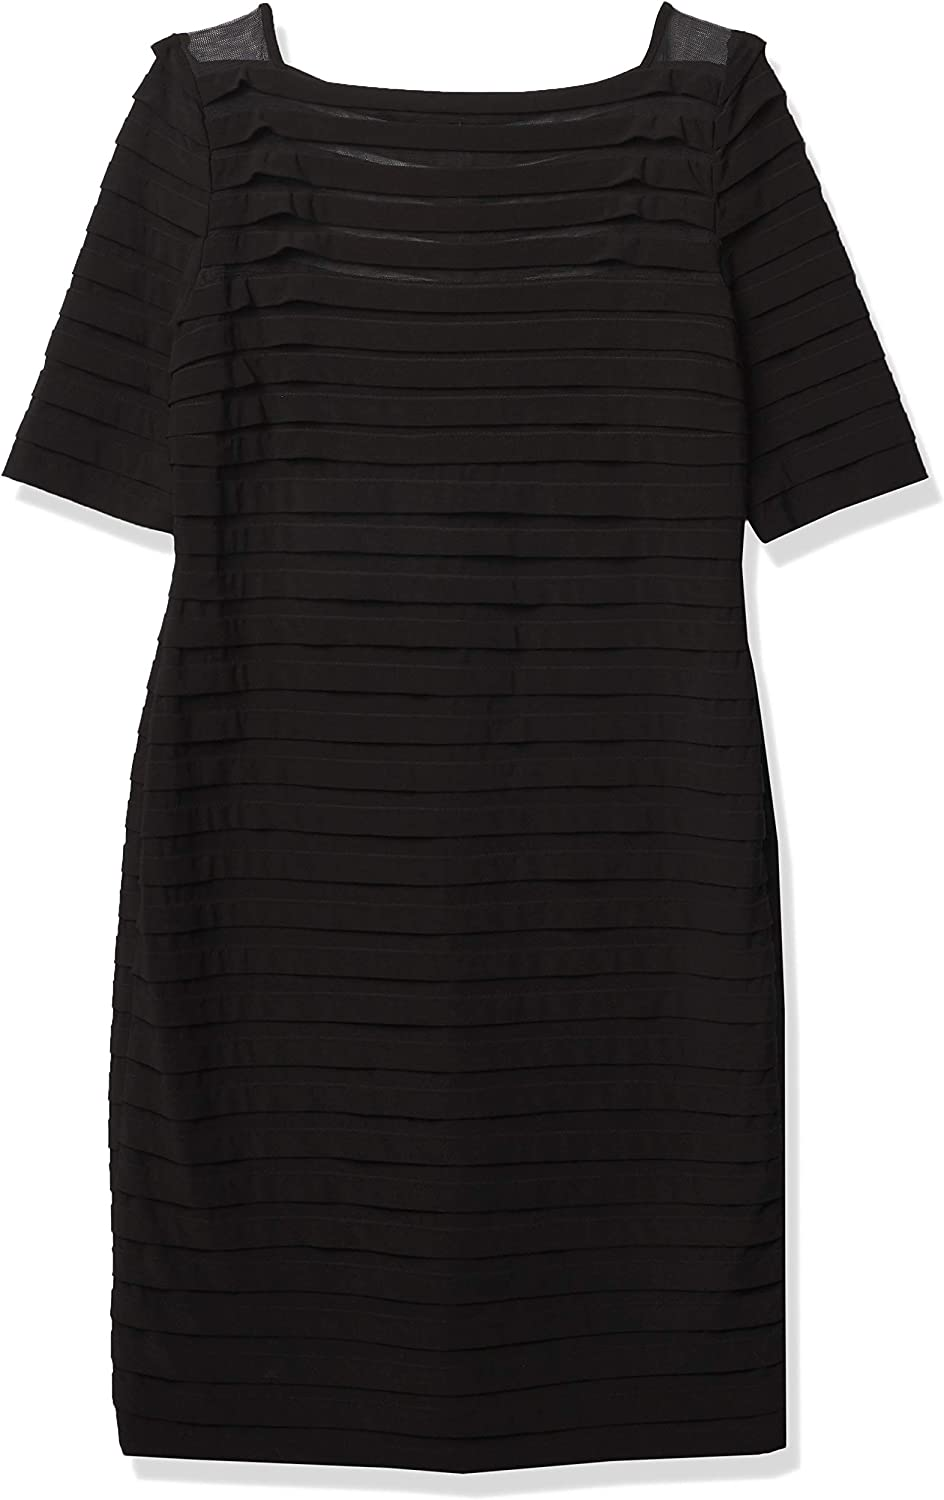 Adrianna Papell Women's Banded Illusion Dress